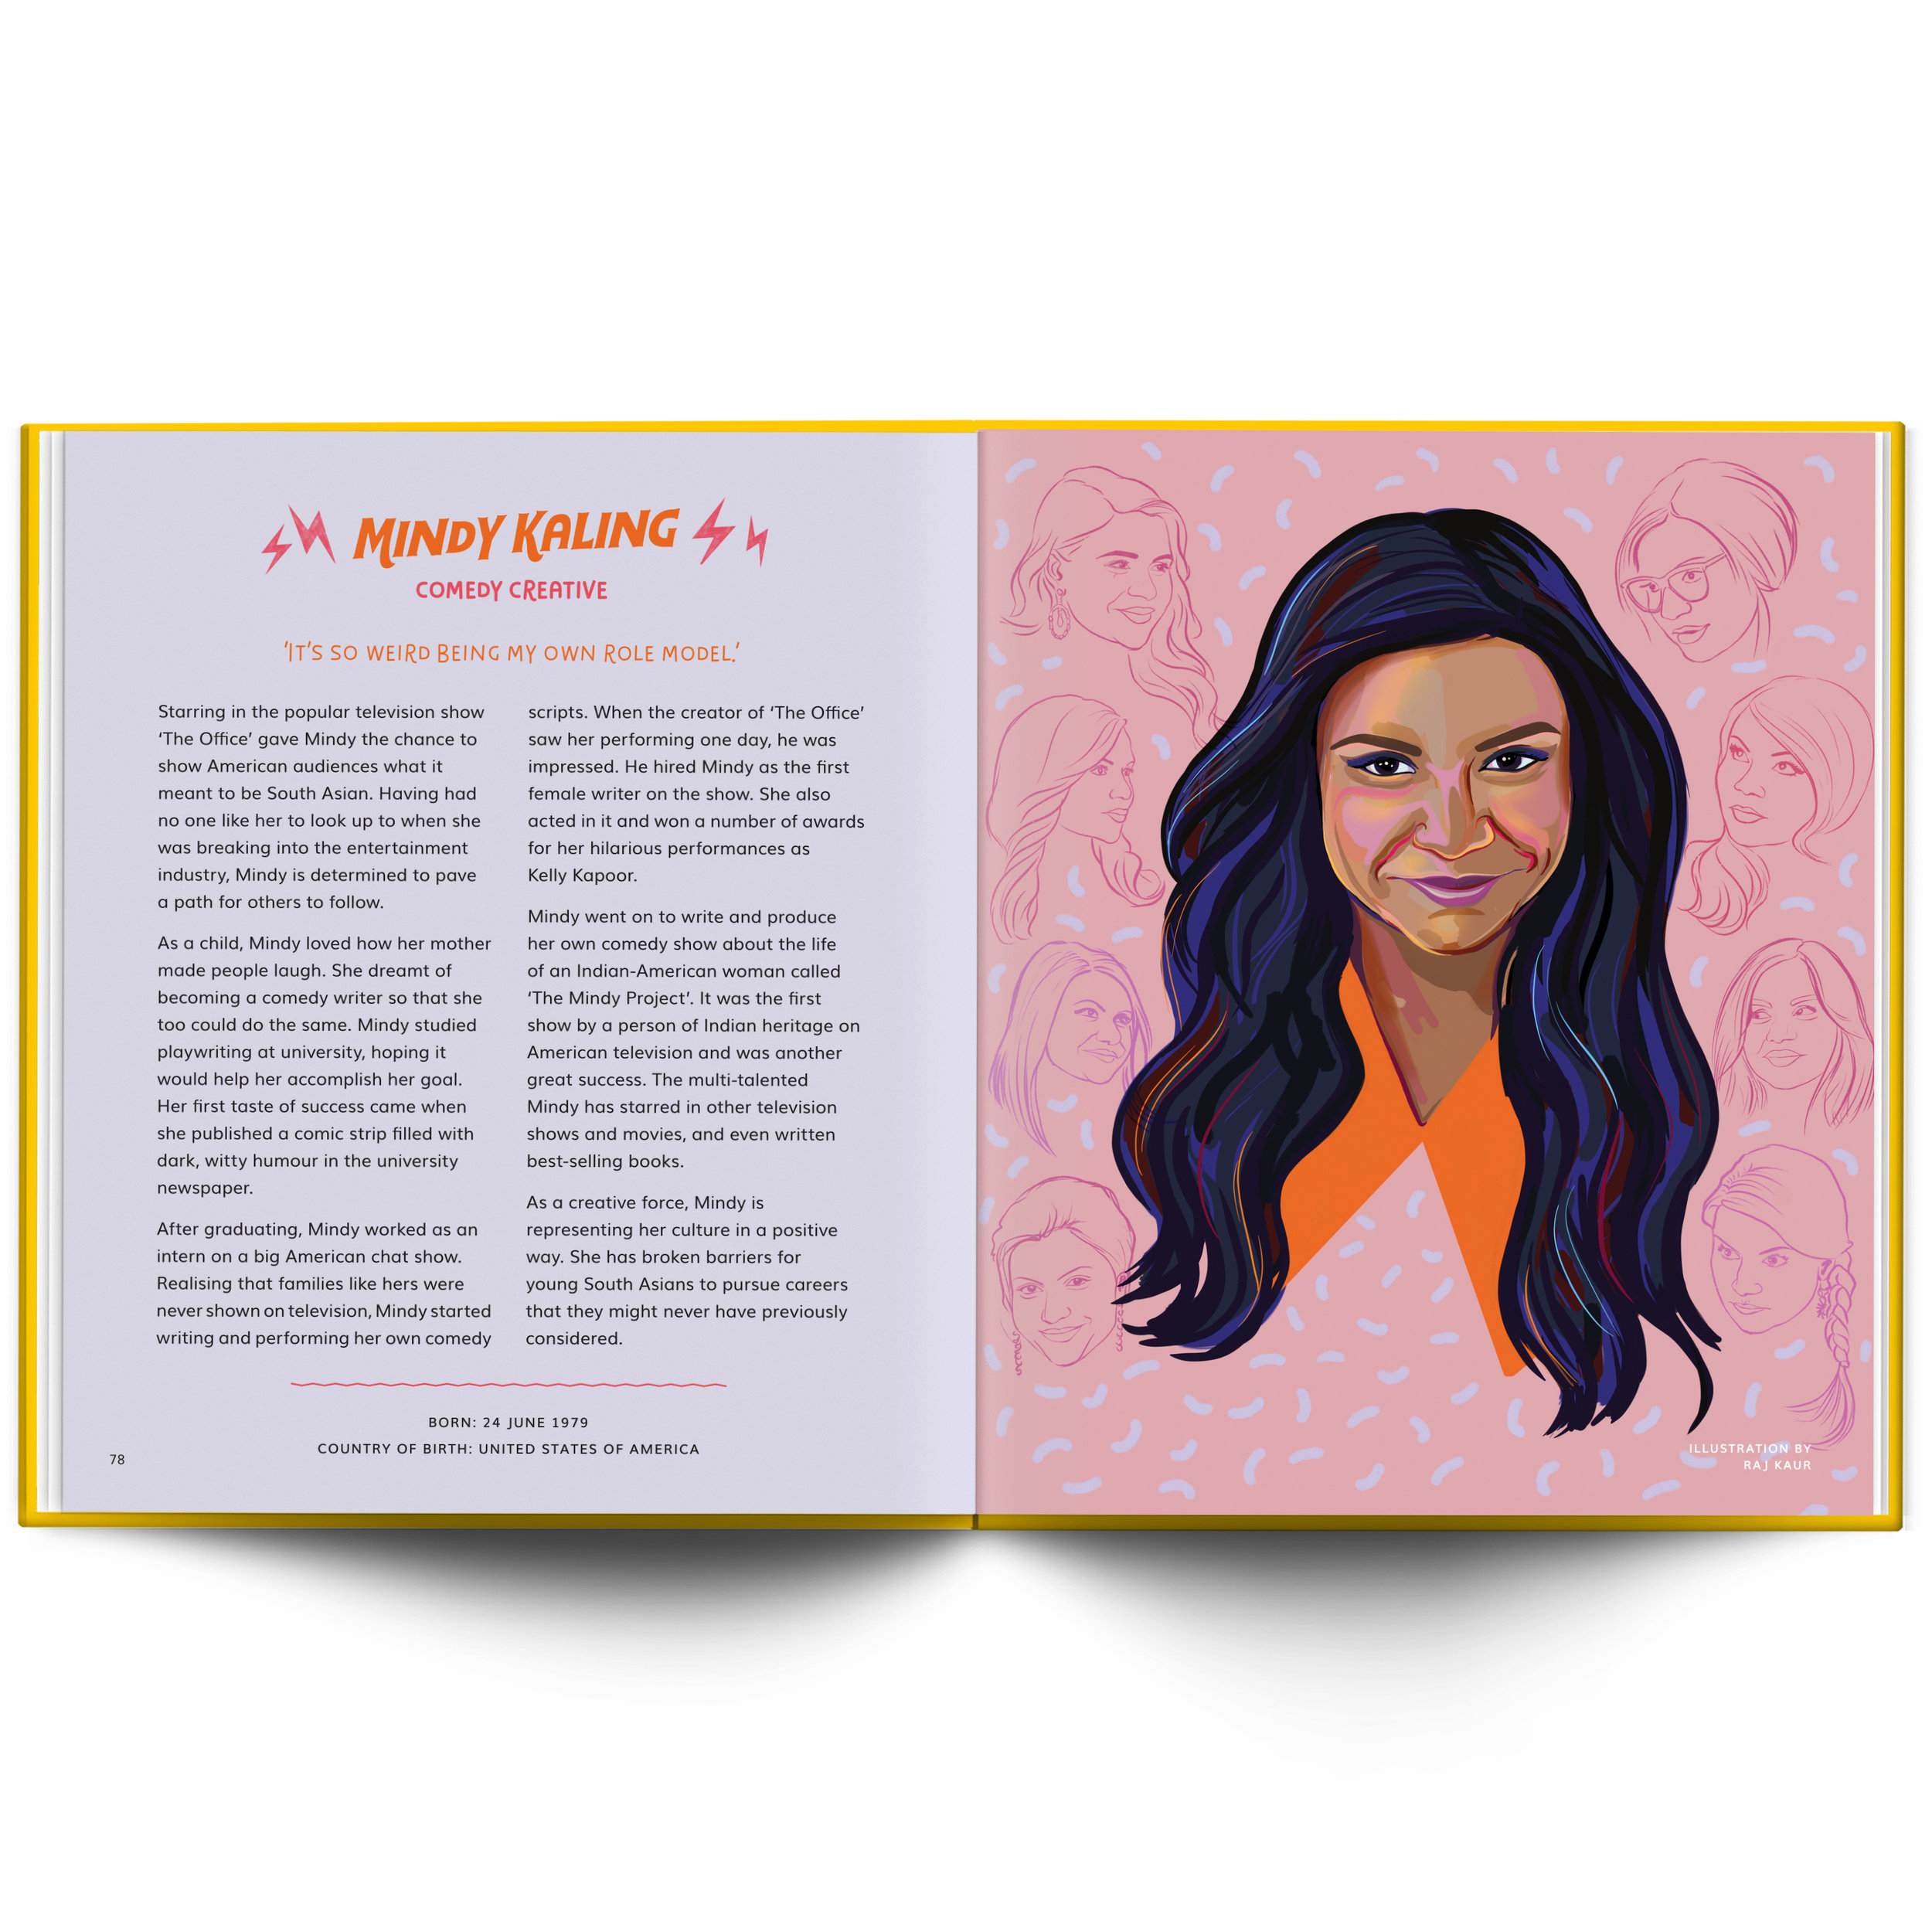 My illustration of Mindy Kaling